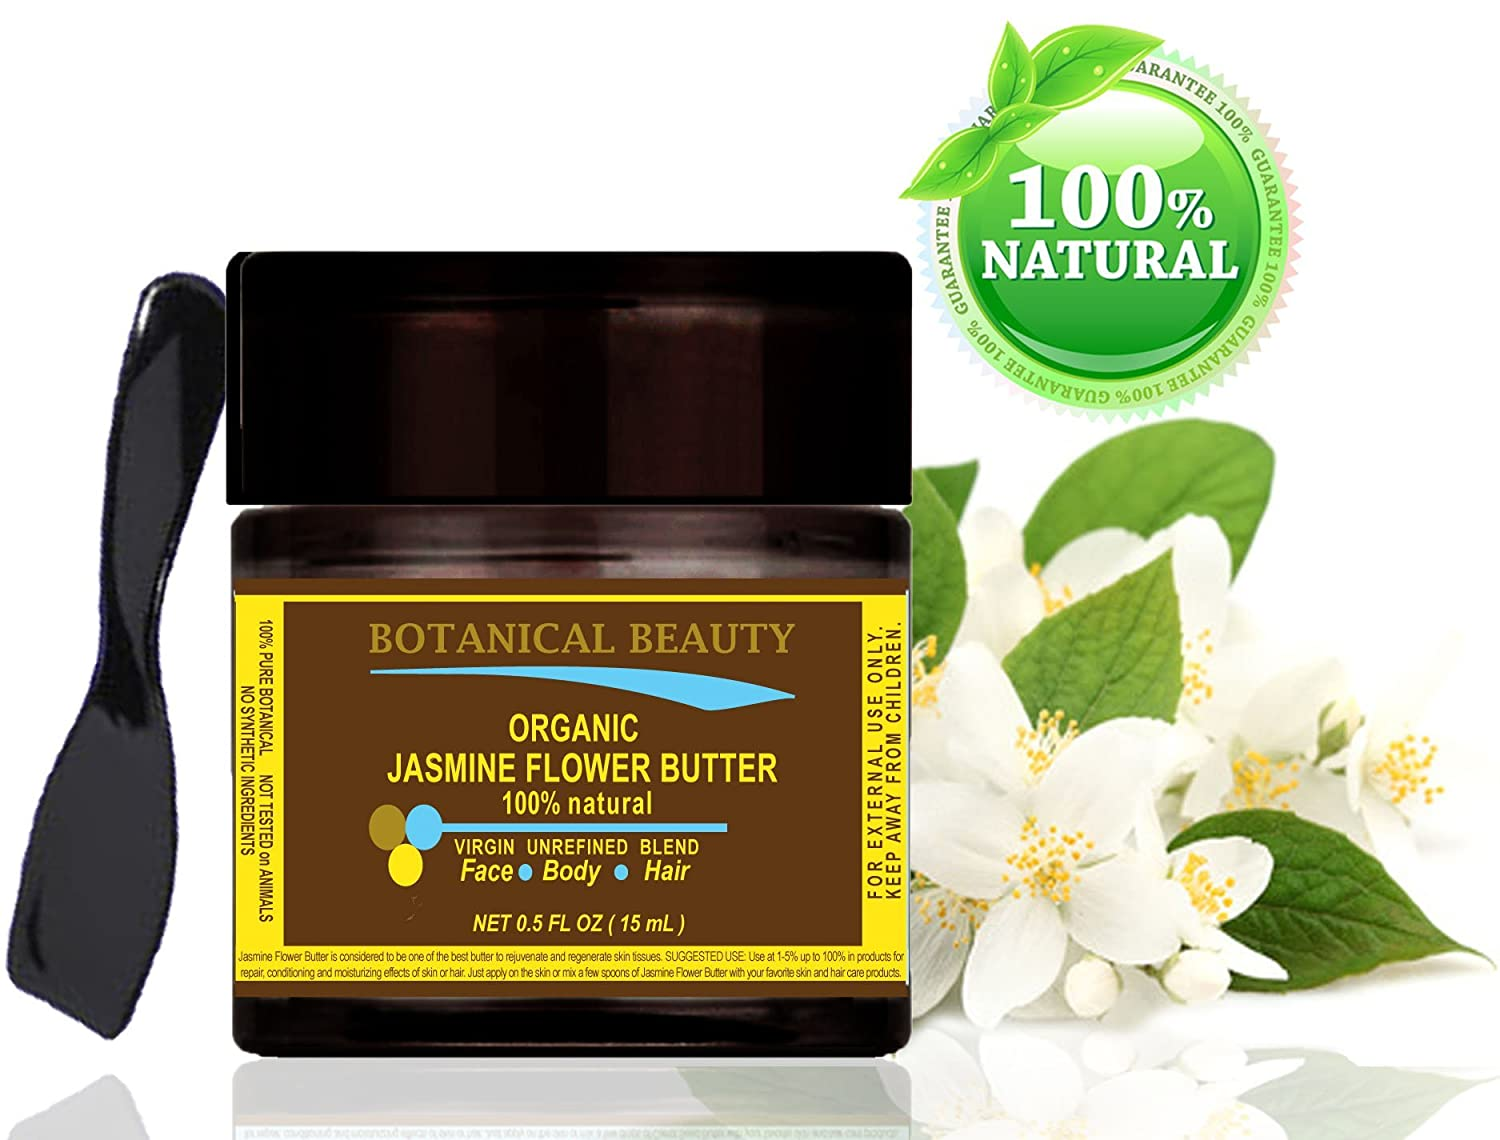 Amazon jasmine flower butter organic 100 natural 100 pure amazon jasmine flower butter organic 100 natural 100 pure botanicals virgin unrefined blend cold pressed 05 oz 15 ml for skin hair and izmirmasajfo